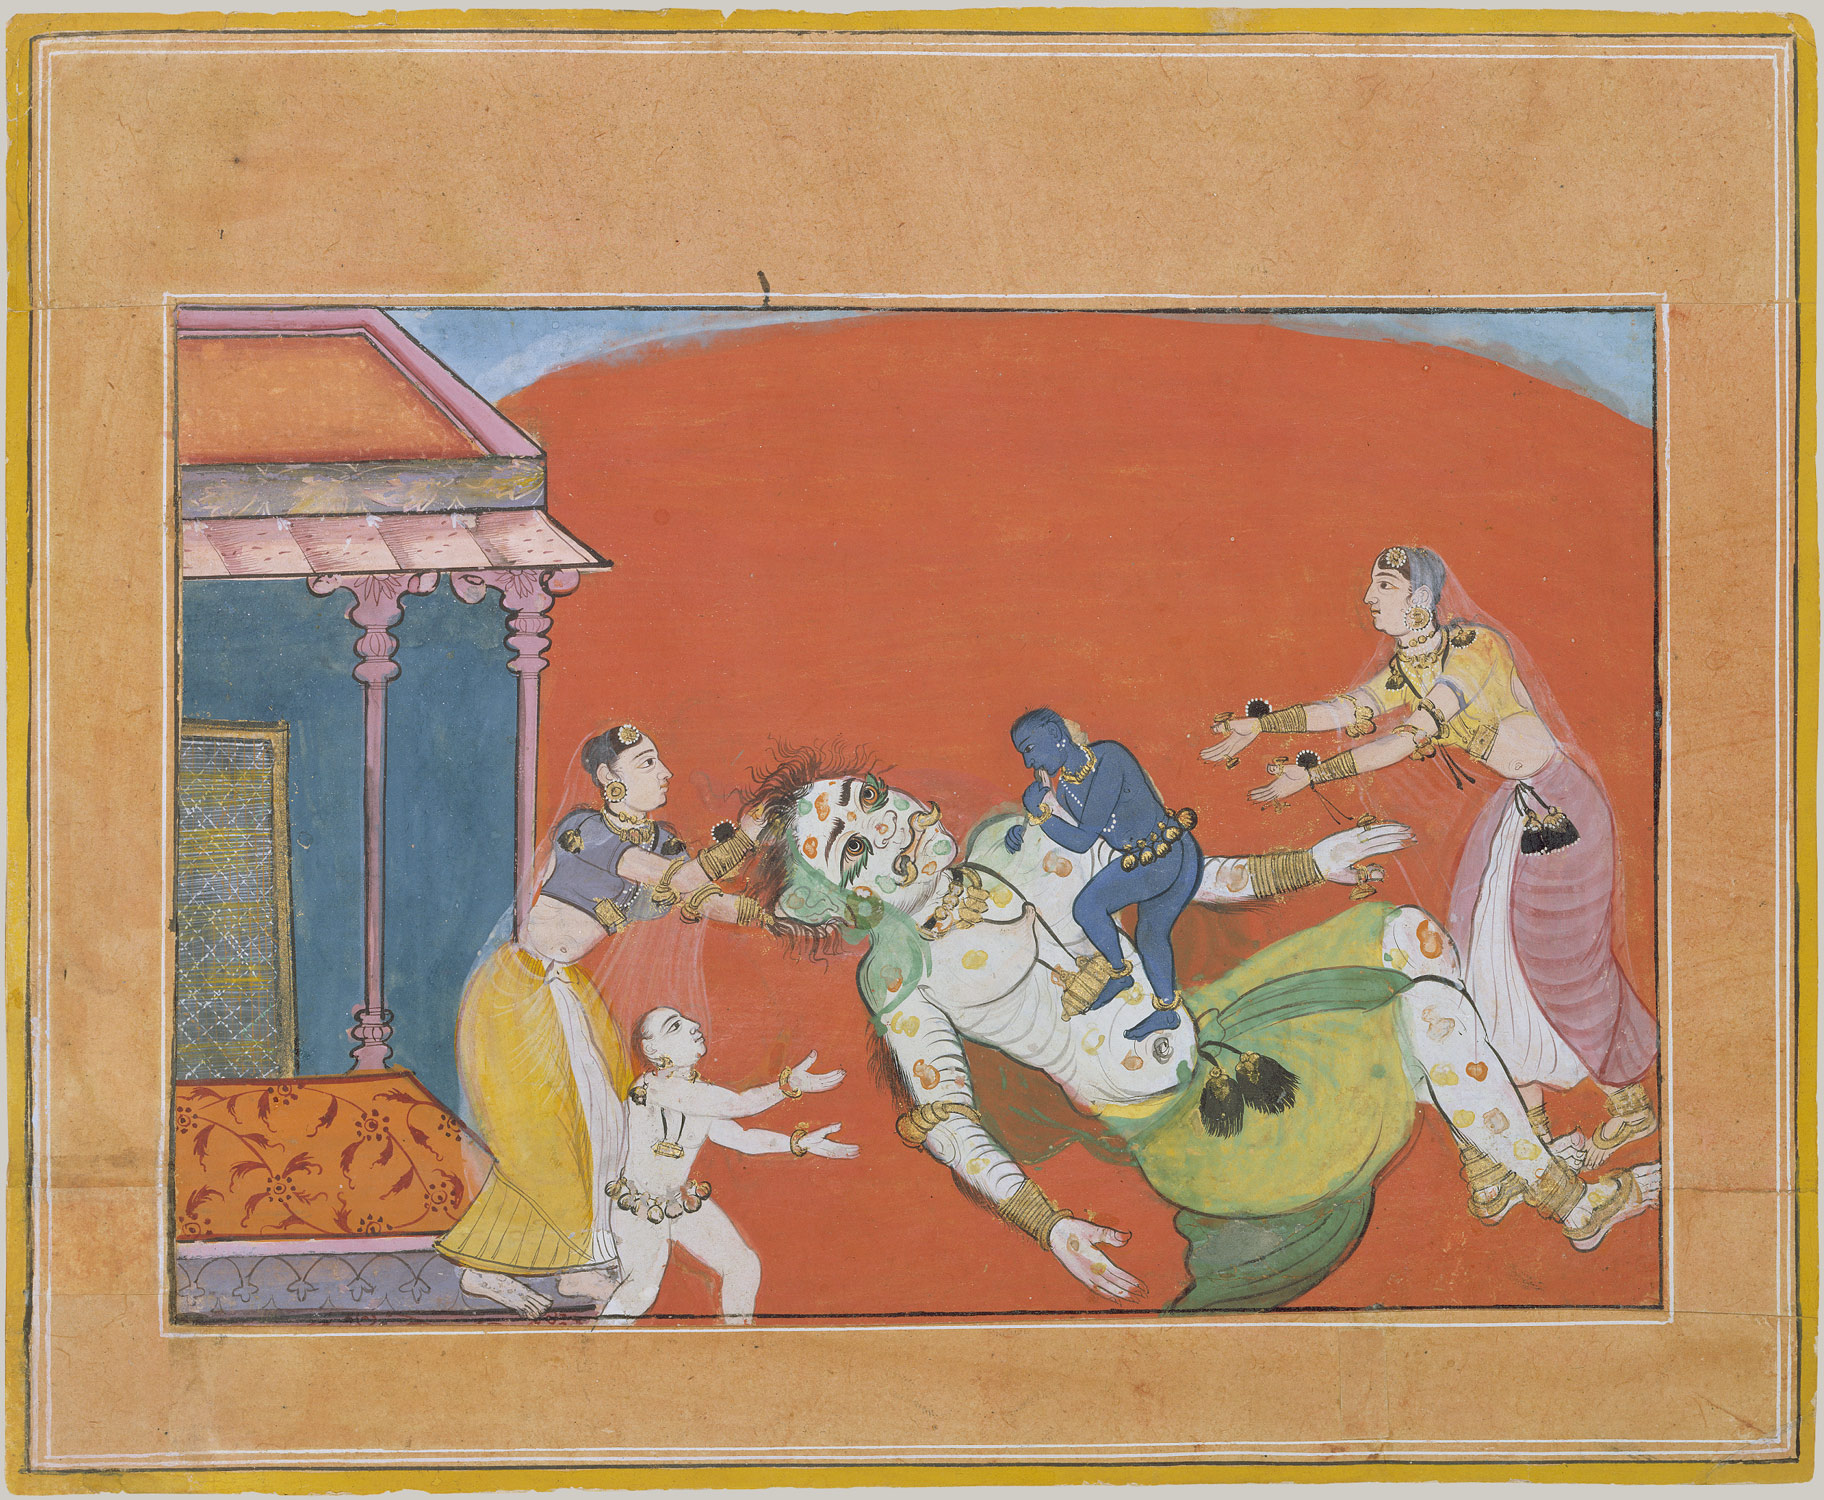 The Death of the Demoness Putana: Folio from a Bhagavata Purana Series